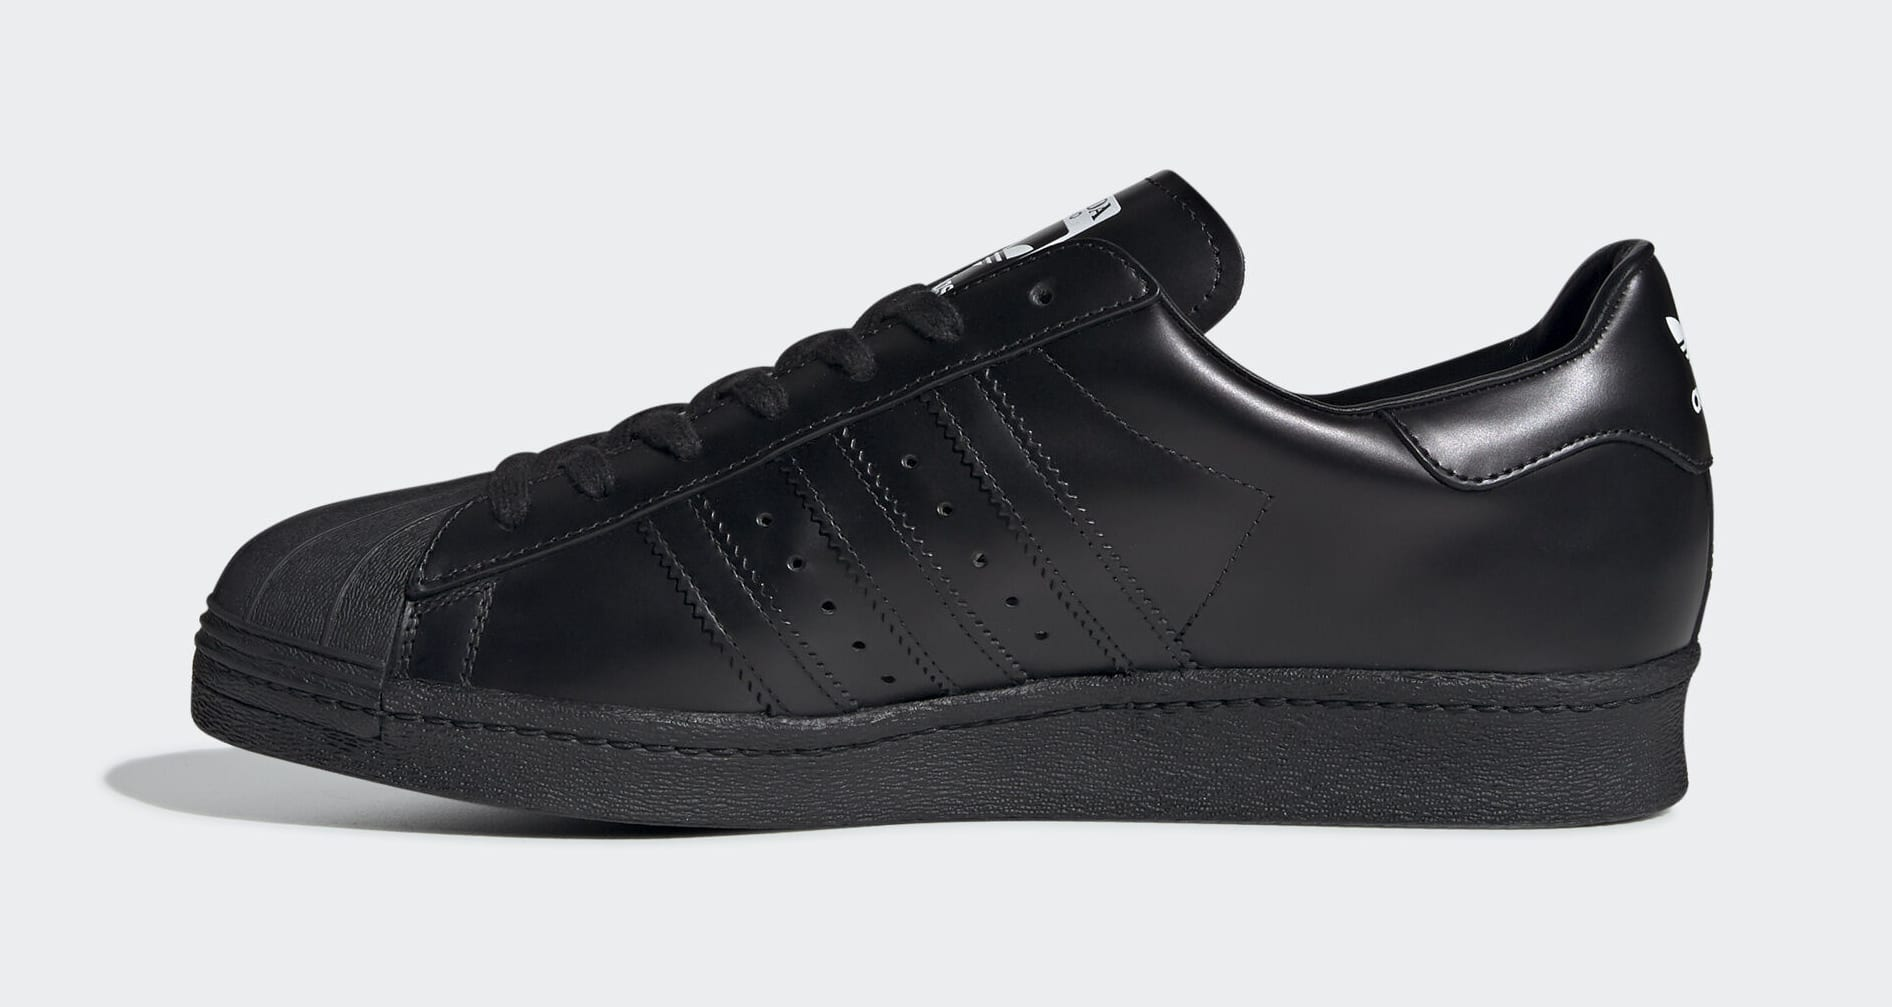 prada-adidas-superstar-black-fw6679-medial